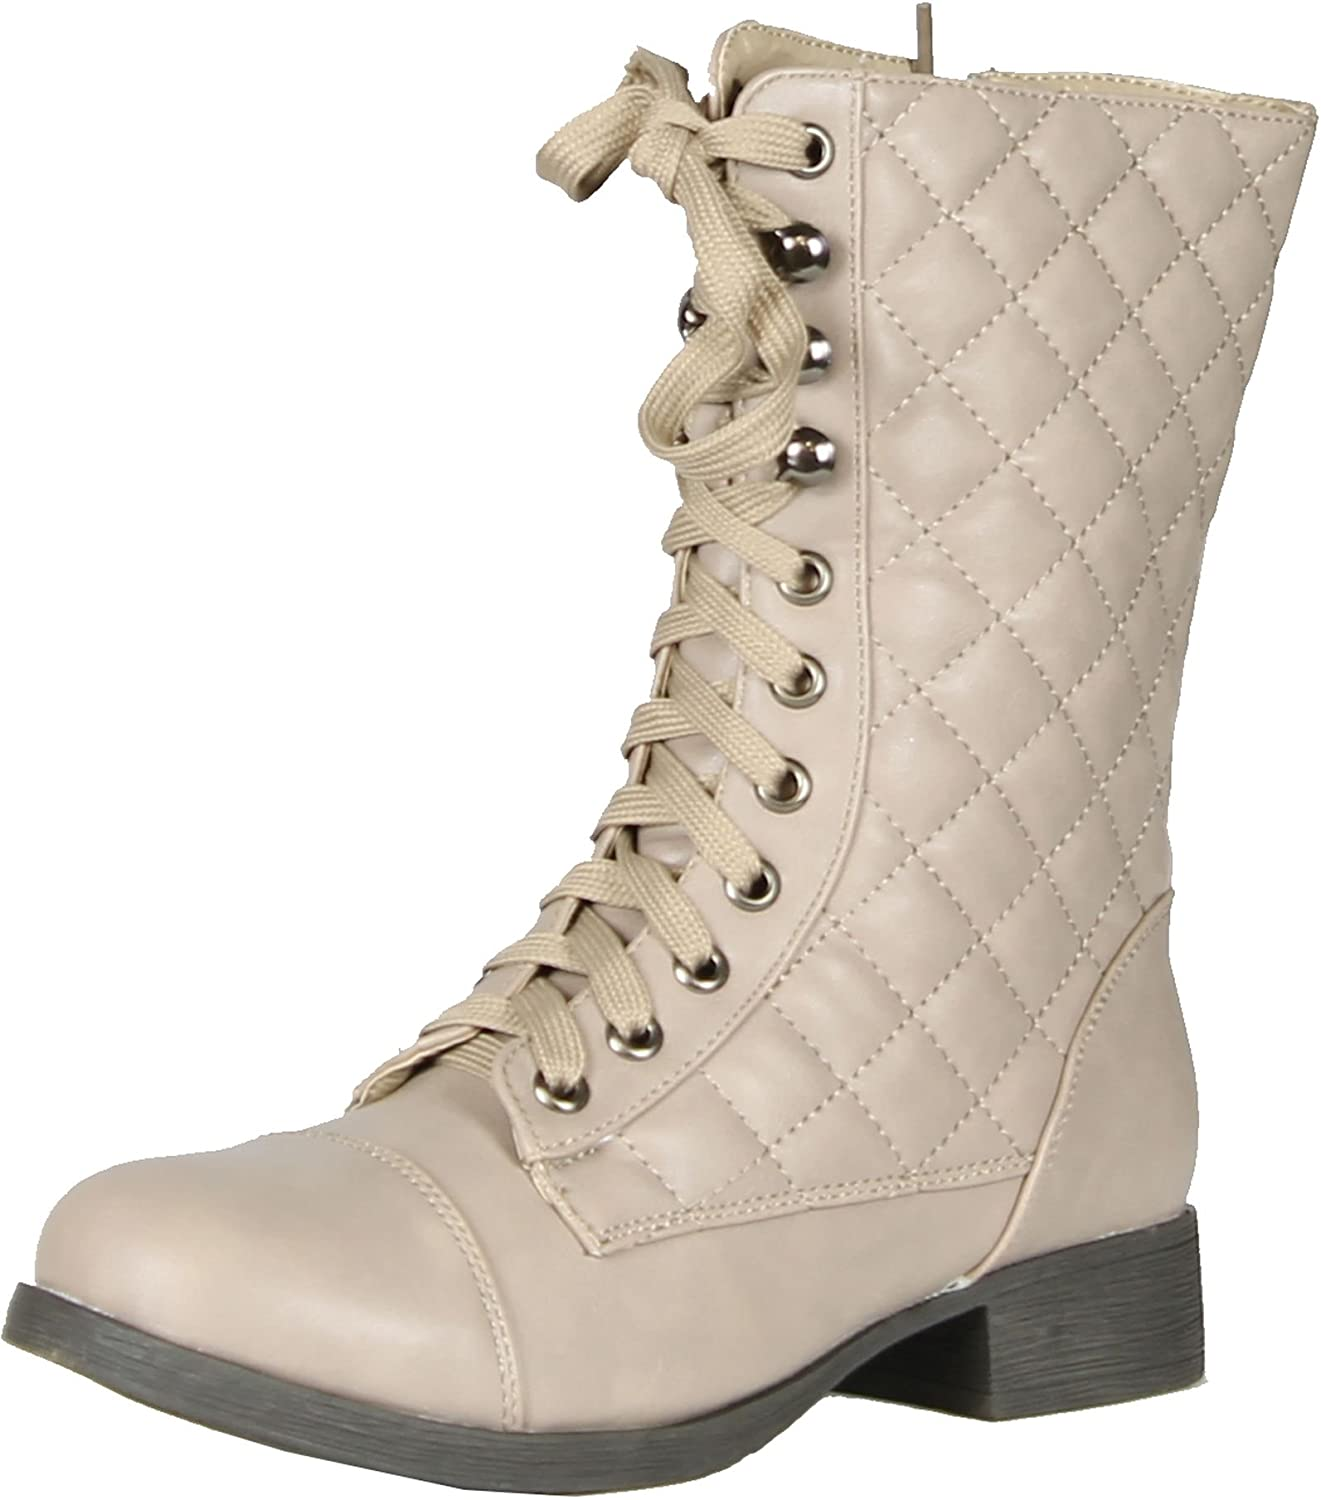 BAMBOO Fighter-16 Women's Quilted Military Lace Up Mid Calf Boots,Stone,6.5